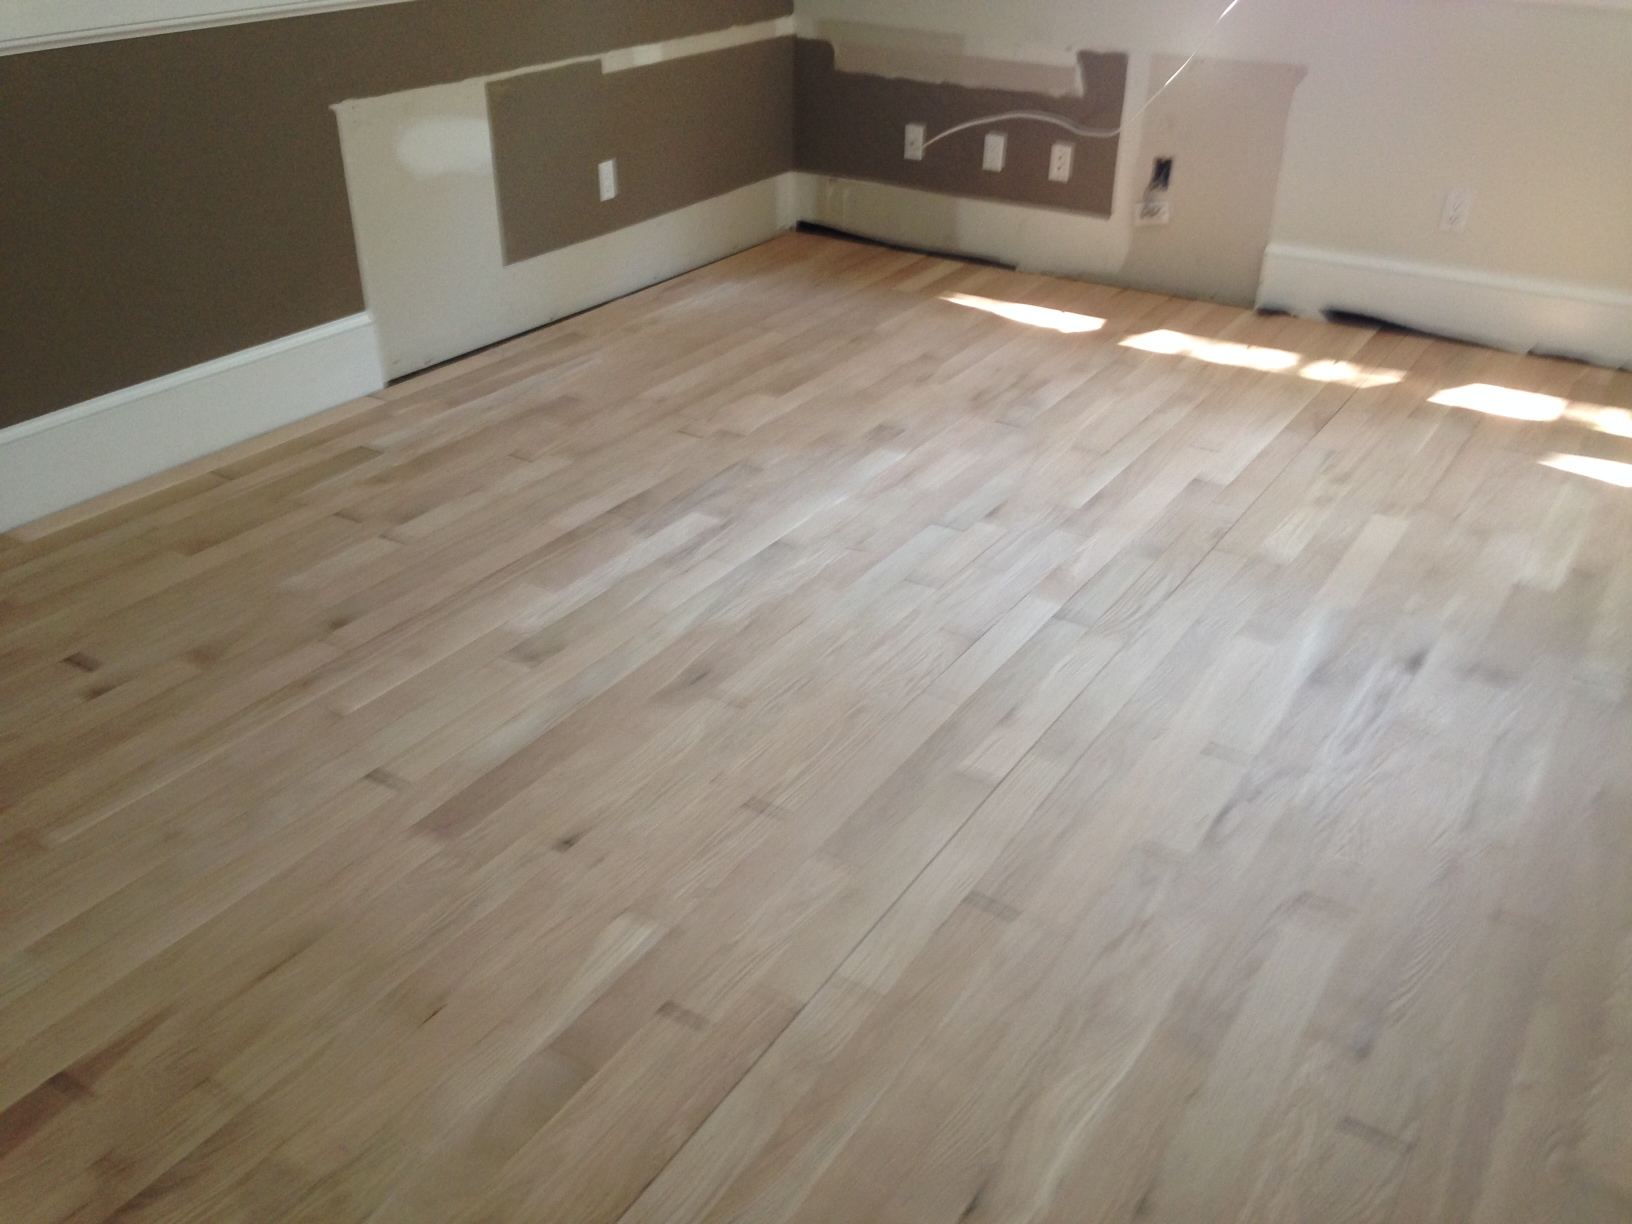 Unfinished laminate flooring alyssamyers for Unfinished wood flooring